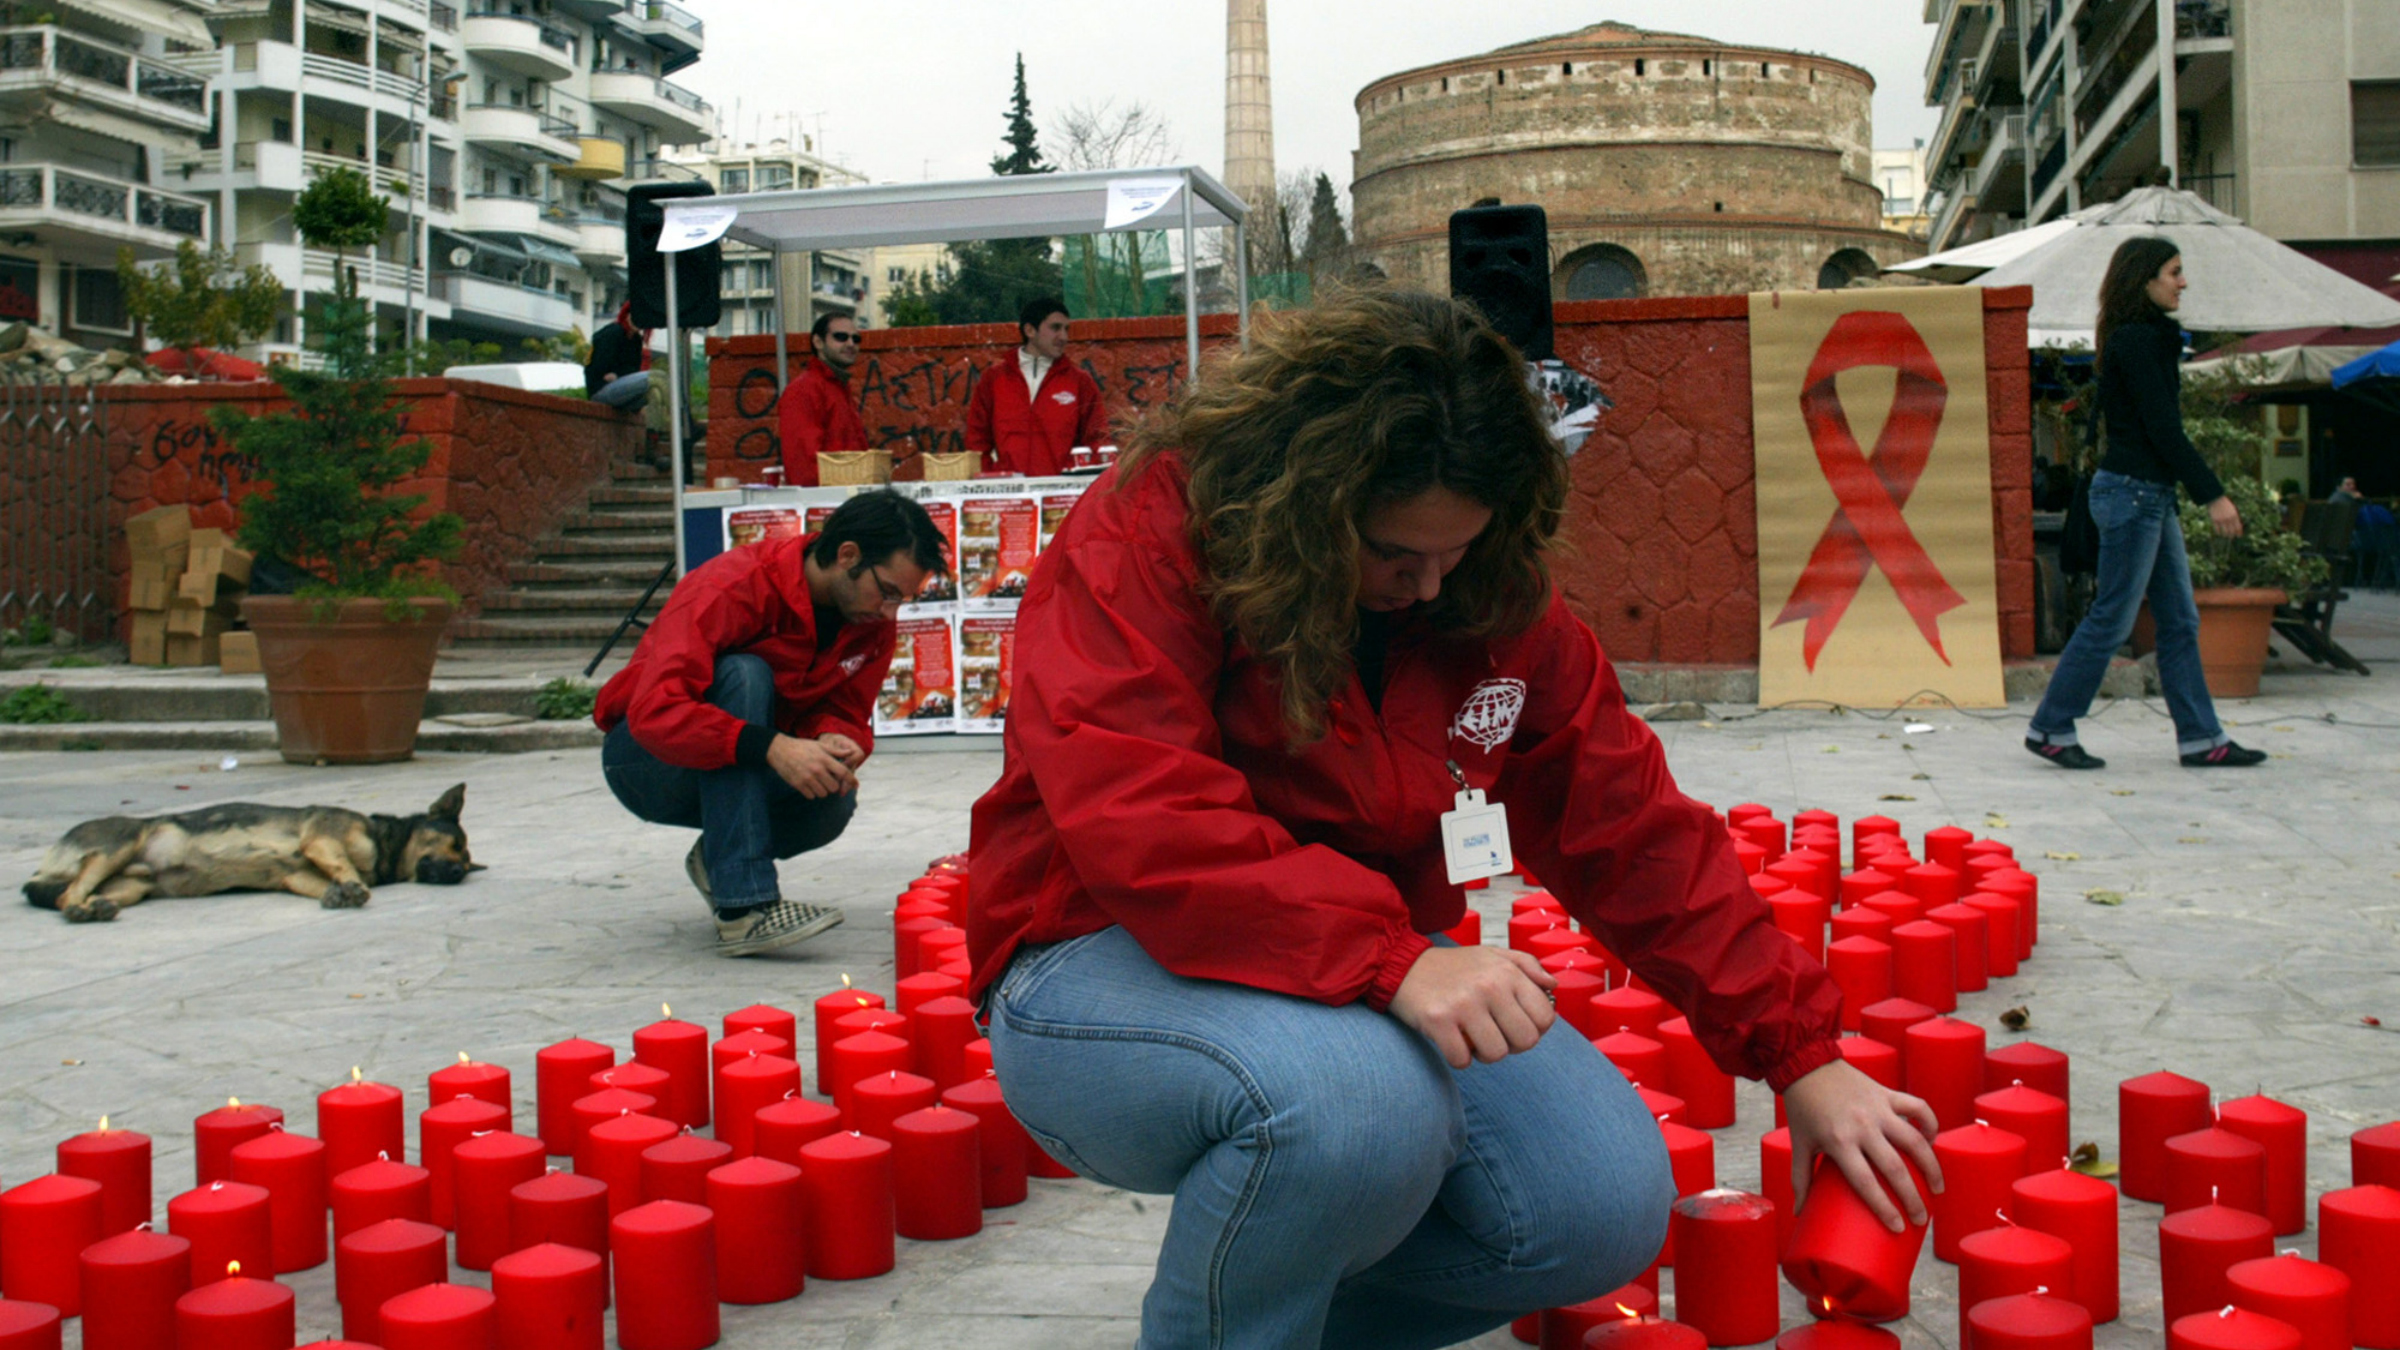 Greece world aids day